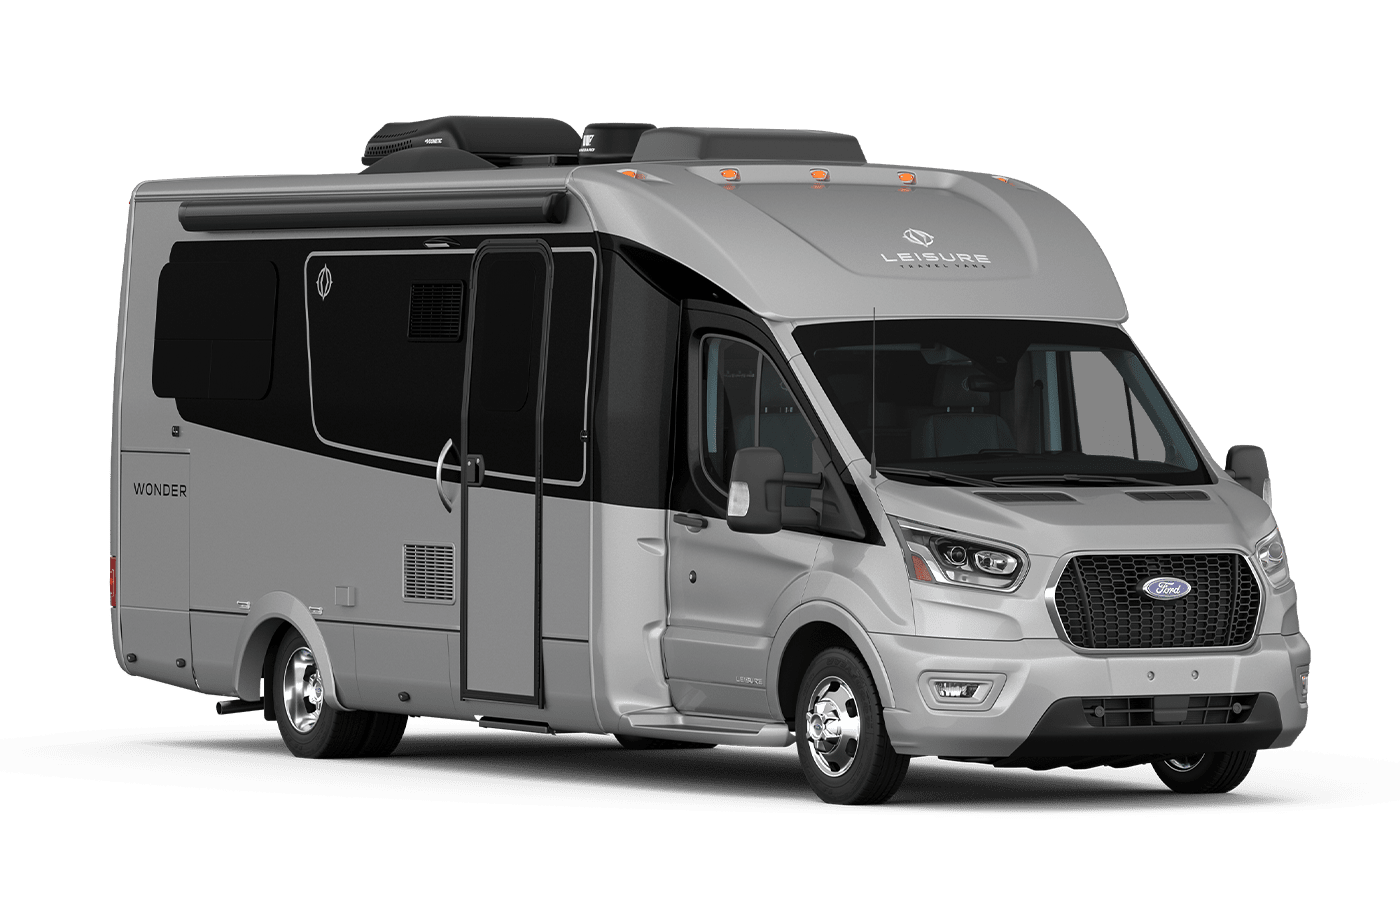 Wonder Class C RV - Leisure Travel Vans